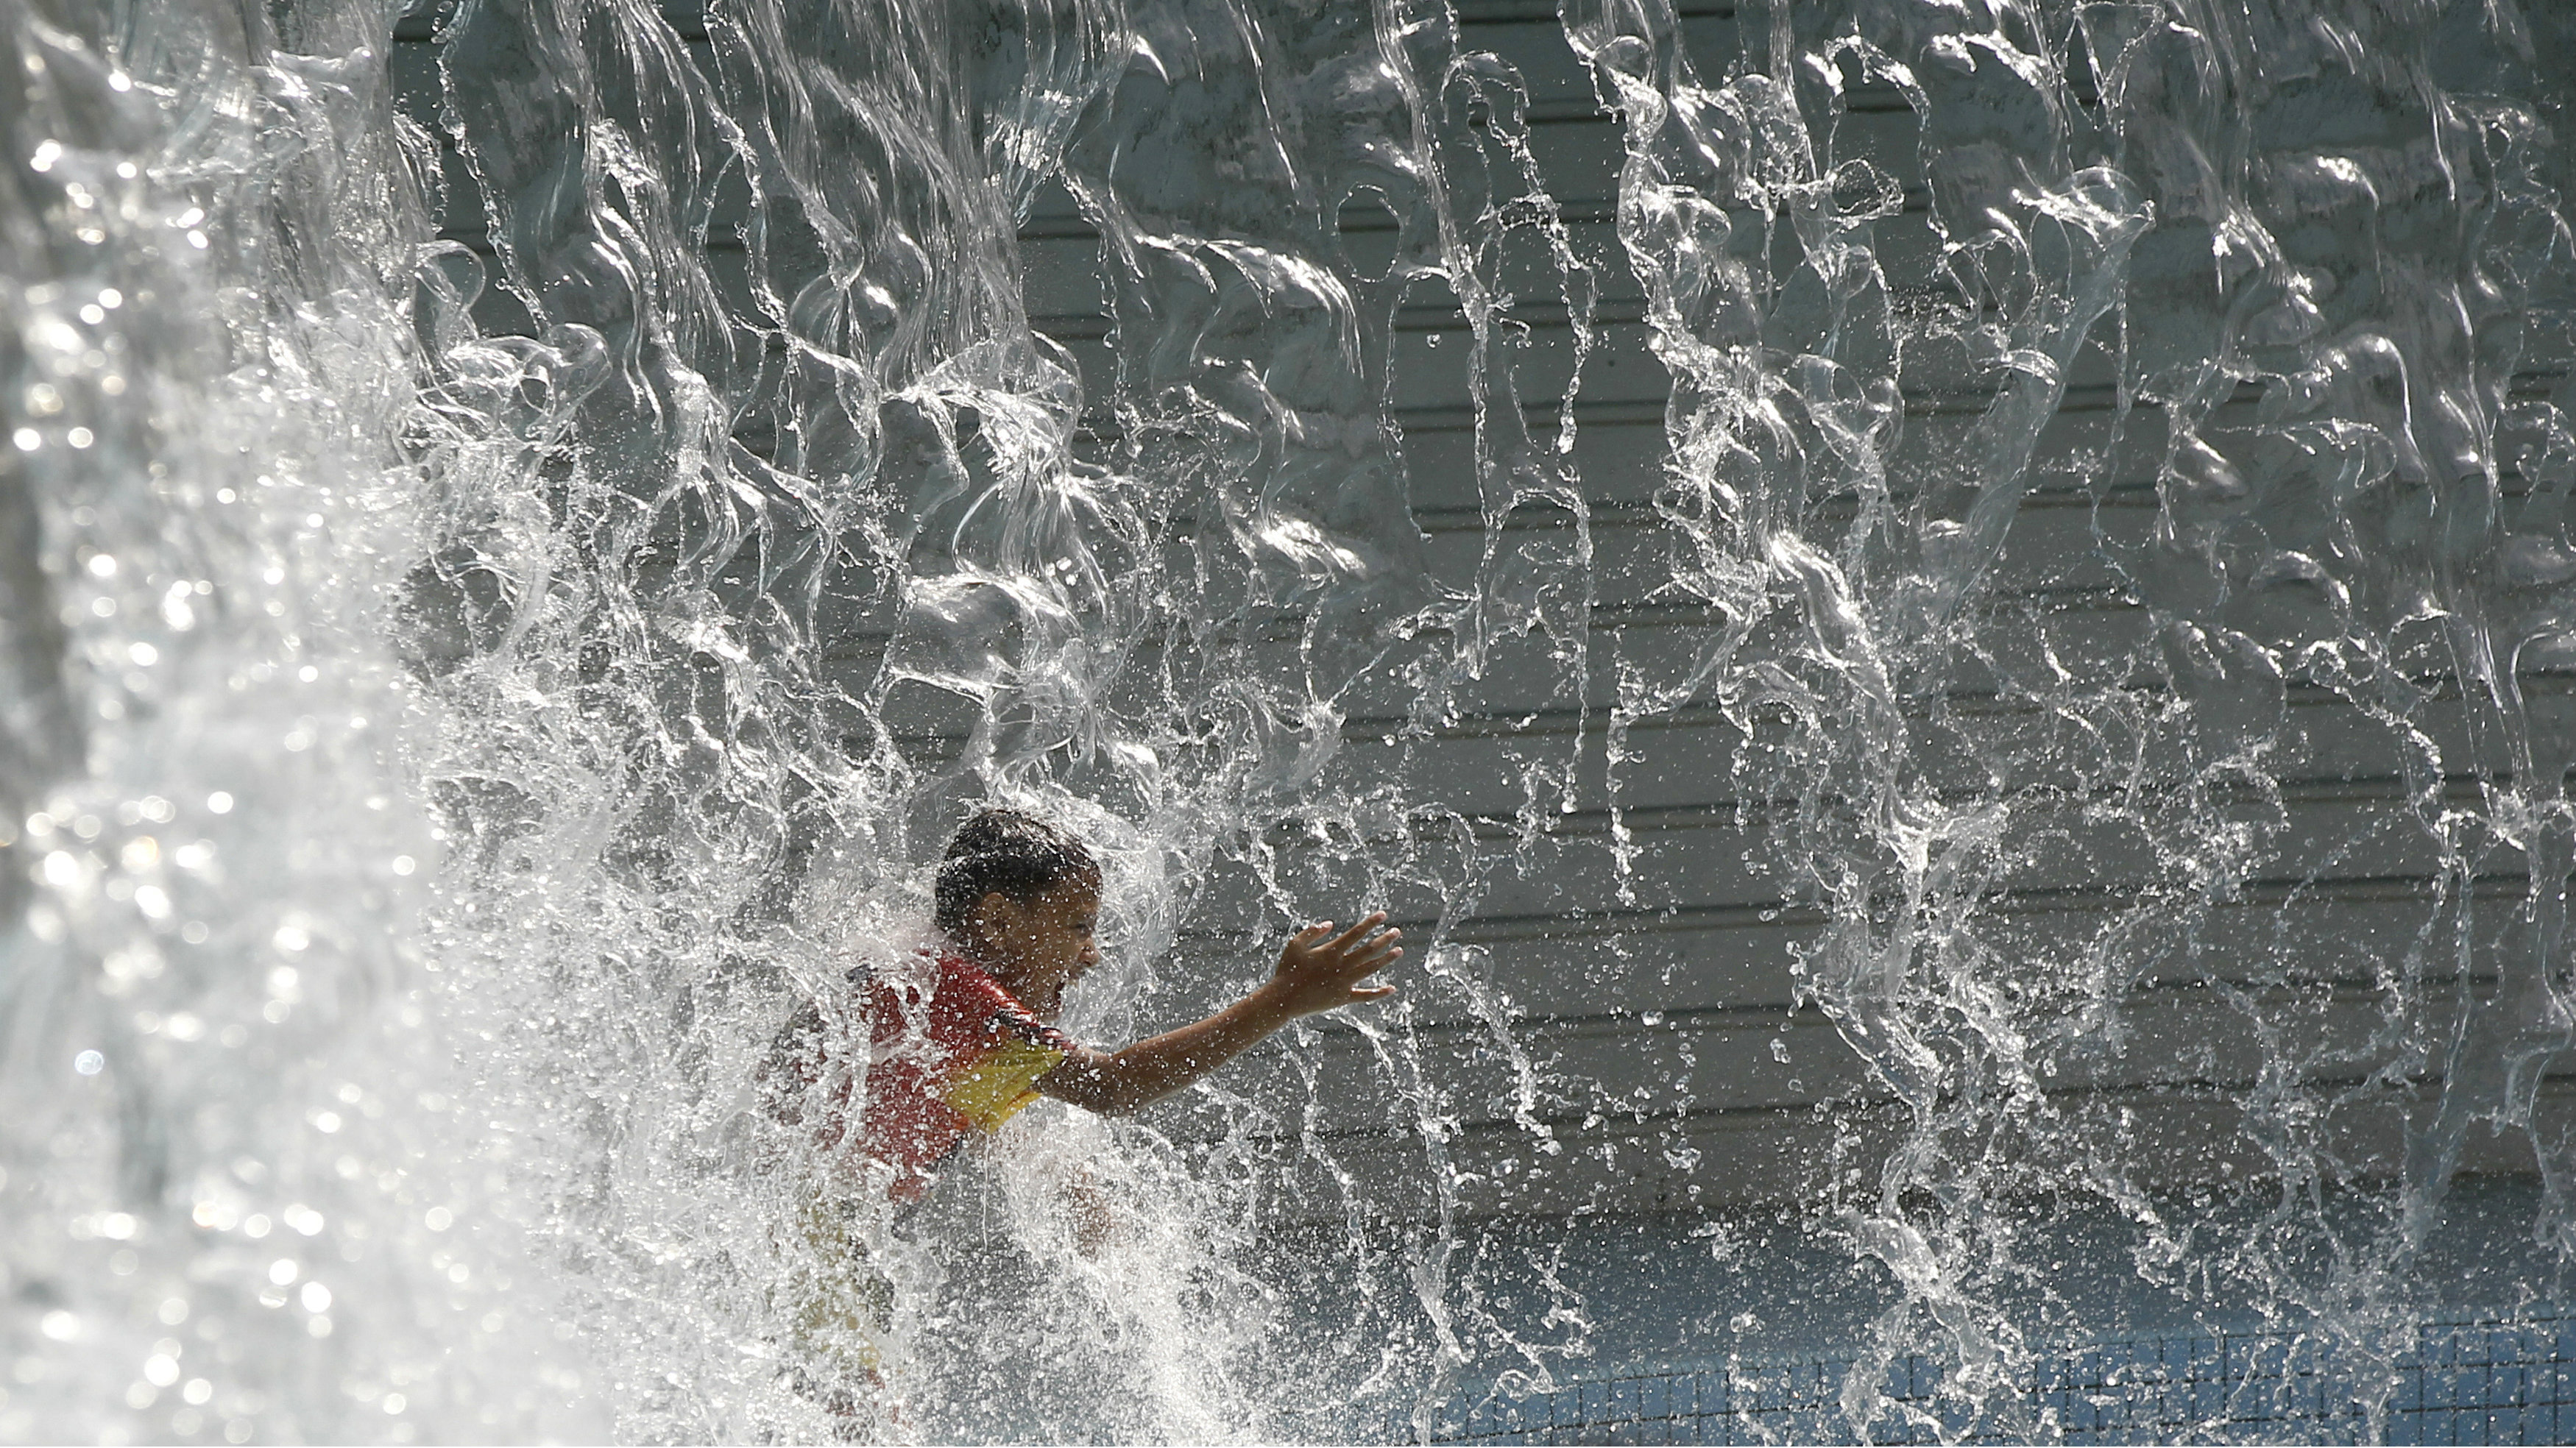 A boy plays at KLCC water park in Kuala Lumpur, Malaysia Wednesday, July 5, 2017.